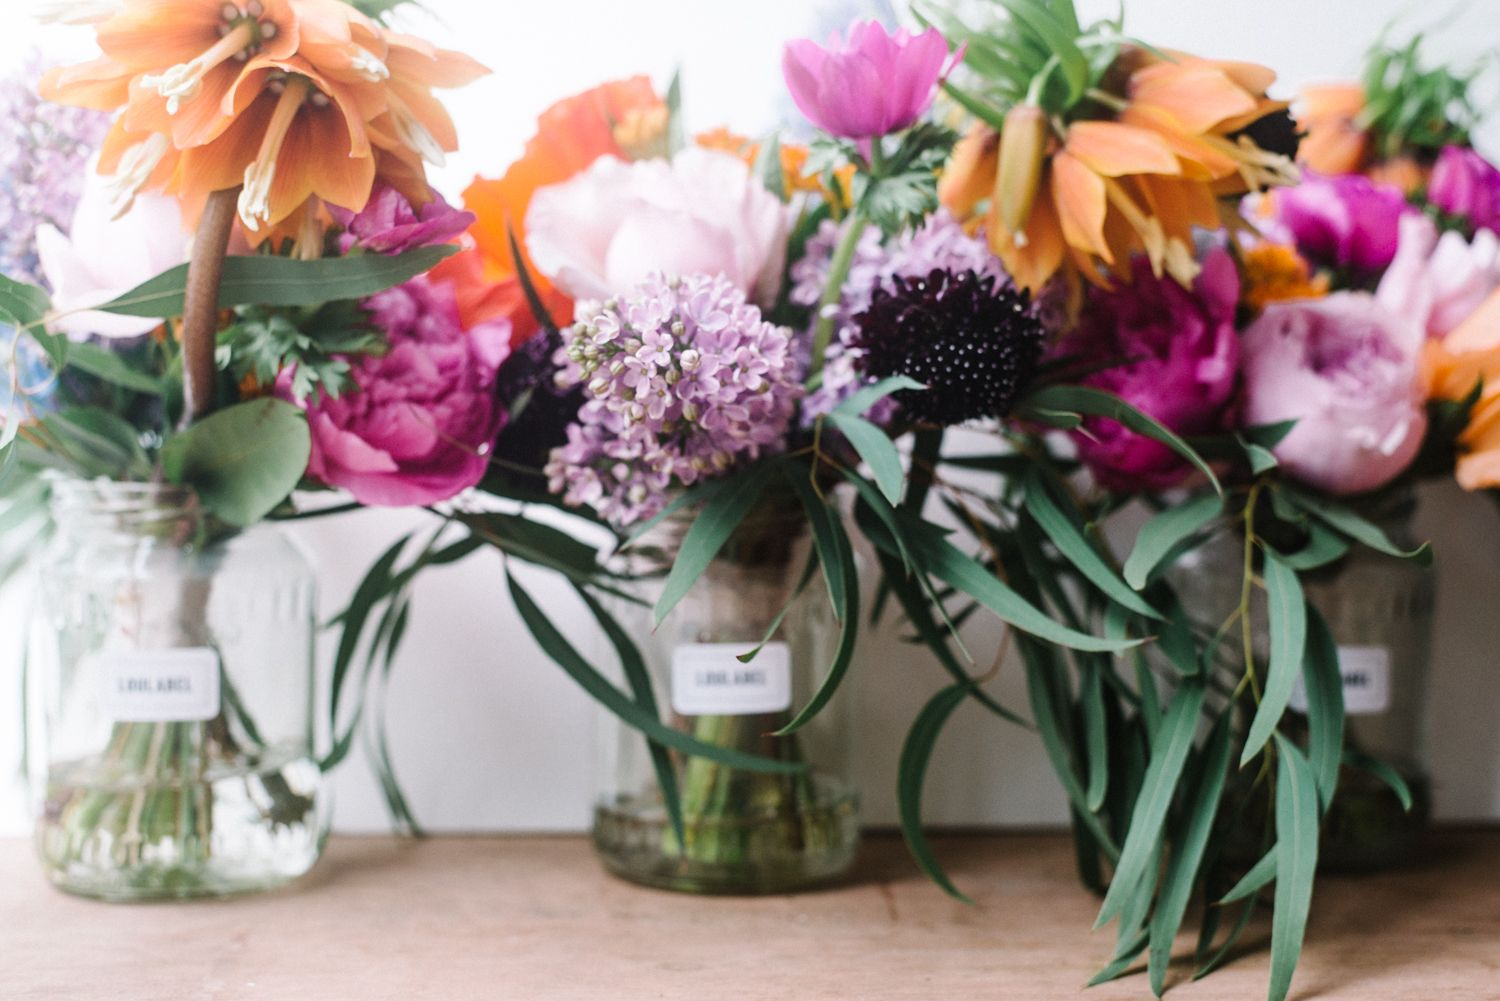 | SPRING TROPICAL WEDDING | Natural, gathered from the garden look bridesmaid's bouquets , made with bright flowers poppies, garden roses, anemones, fritillaria, scabious, delphiniums, lilac & eucalyptus for their beautiful wedding at Polhawn Fort on the coast of Cornwall.